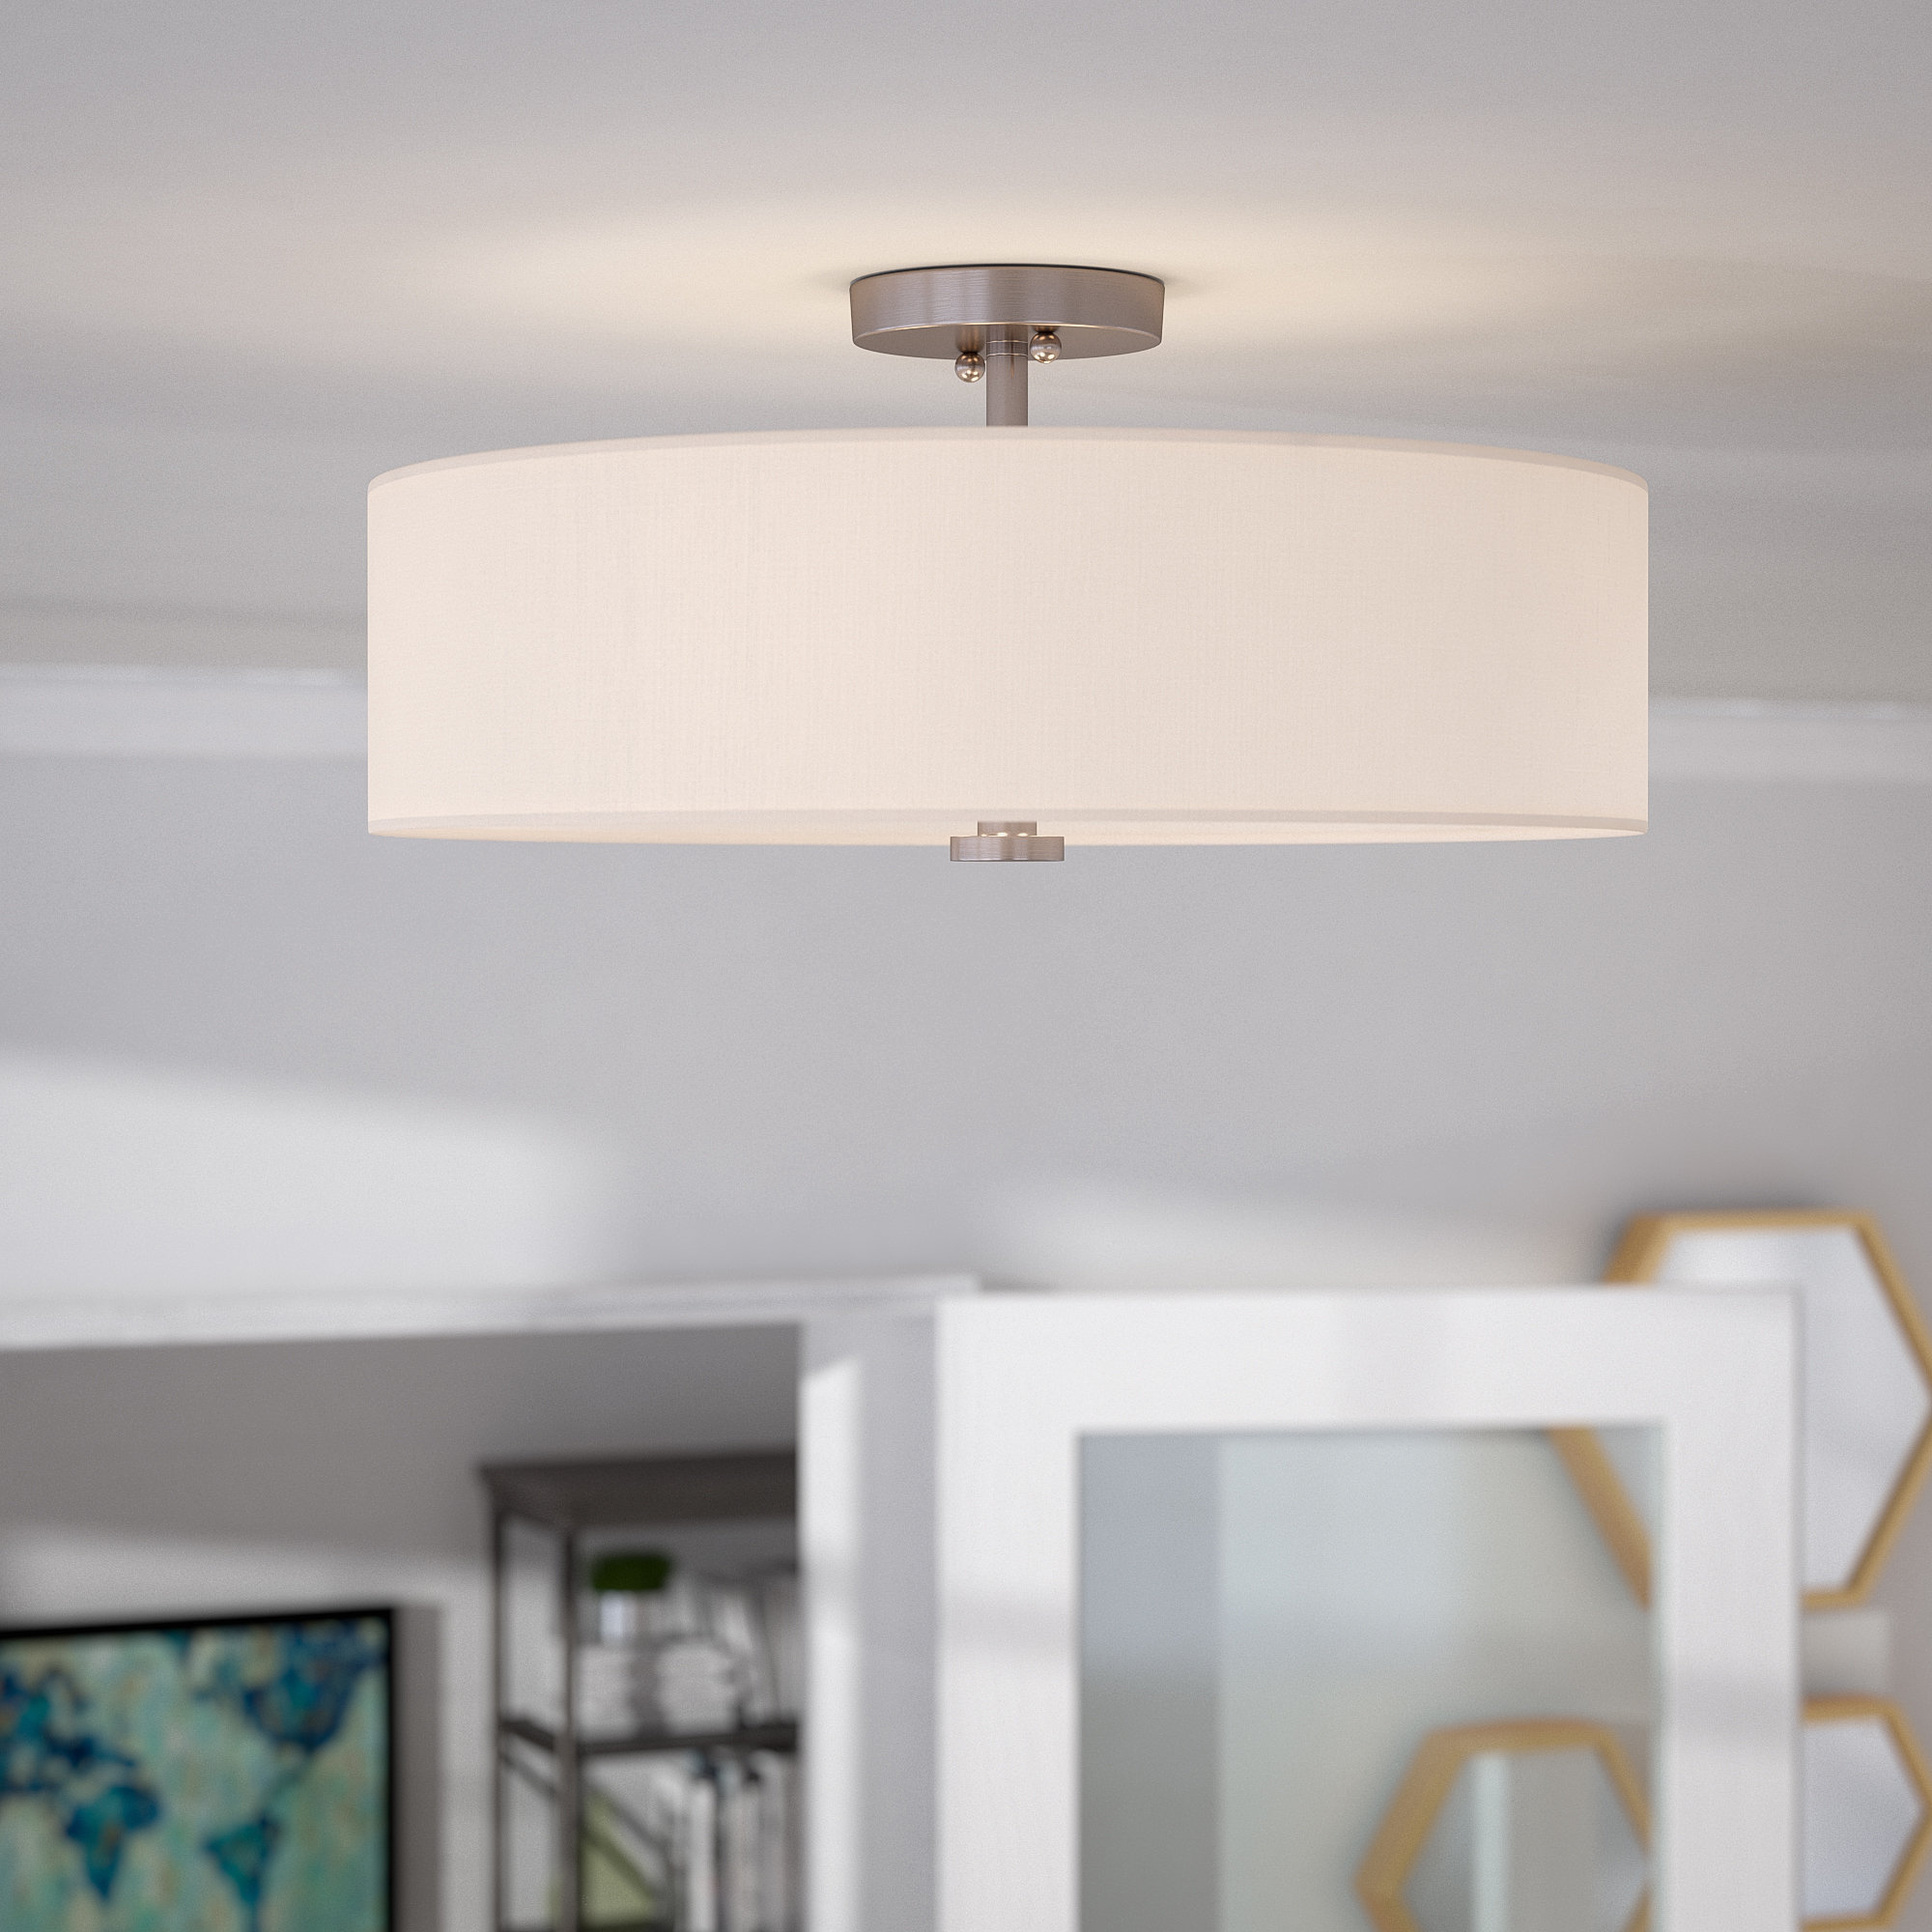 Burgoon 4 Light Semi Flush Mount With Most Recent Breithaup 4 Light Drum Chandeliers (View 10 of 20)